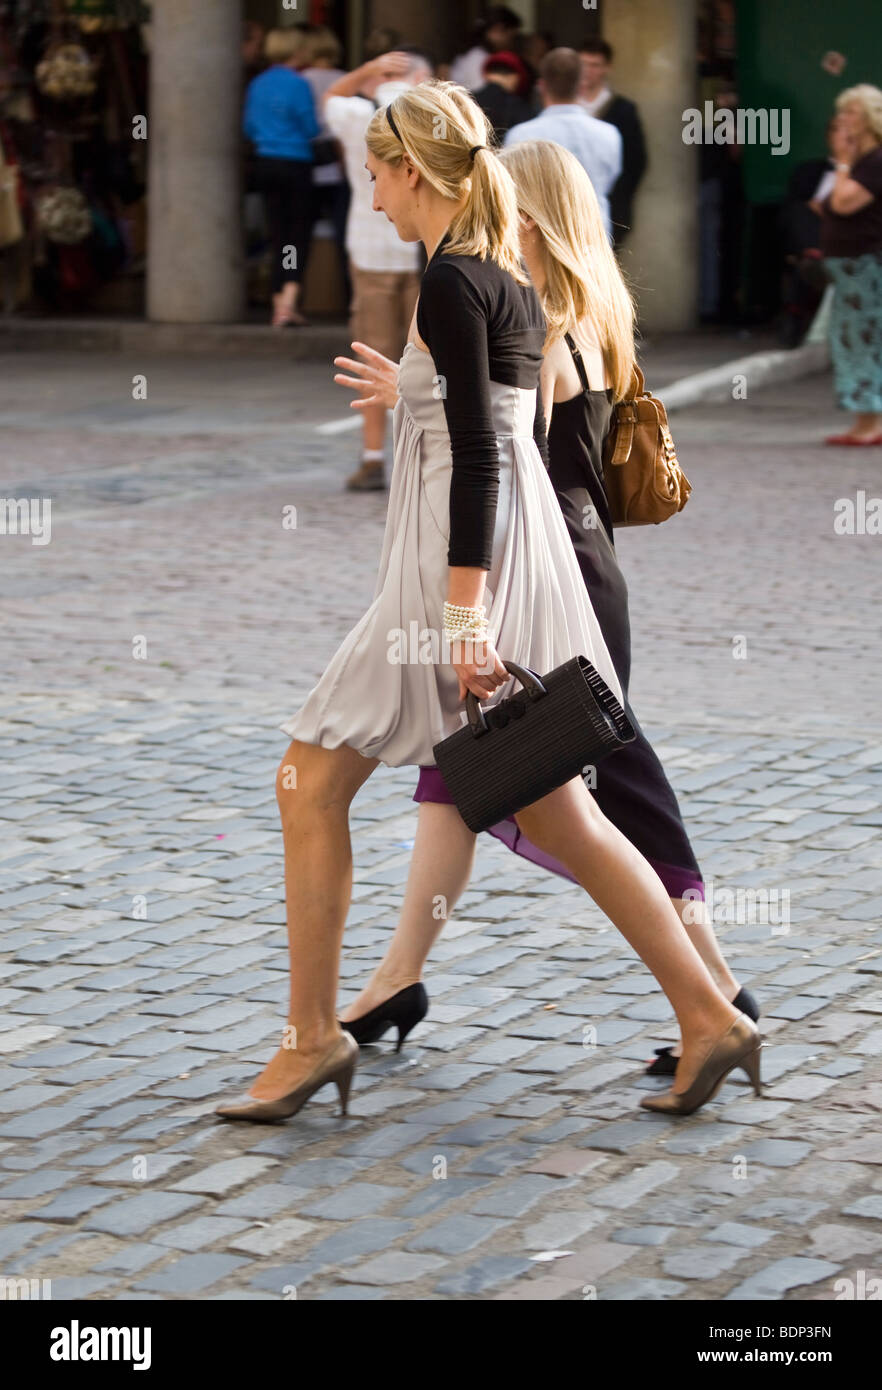 Glamorous Ladies on their way for a night out - Stock Image